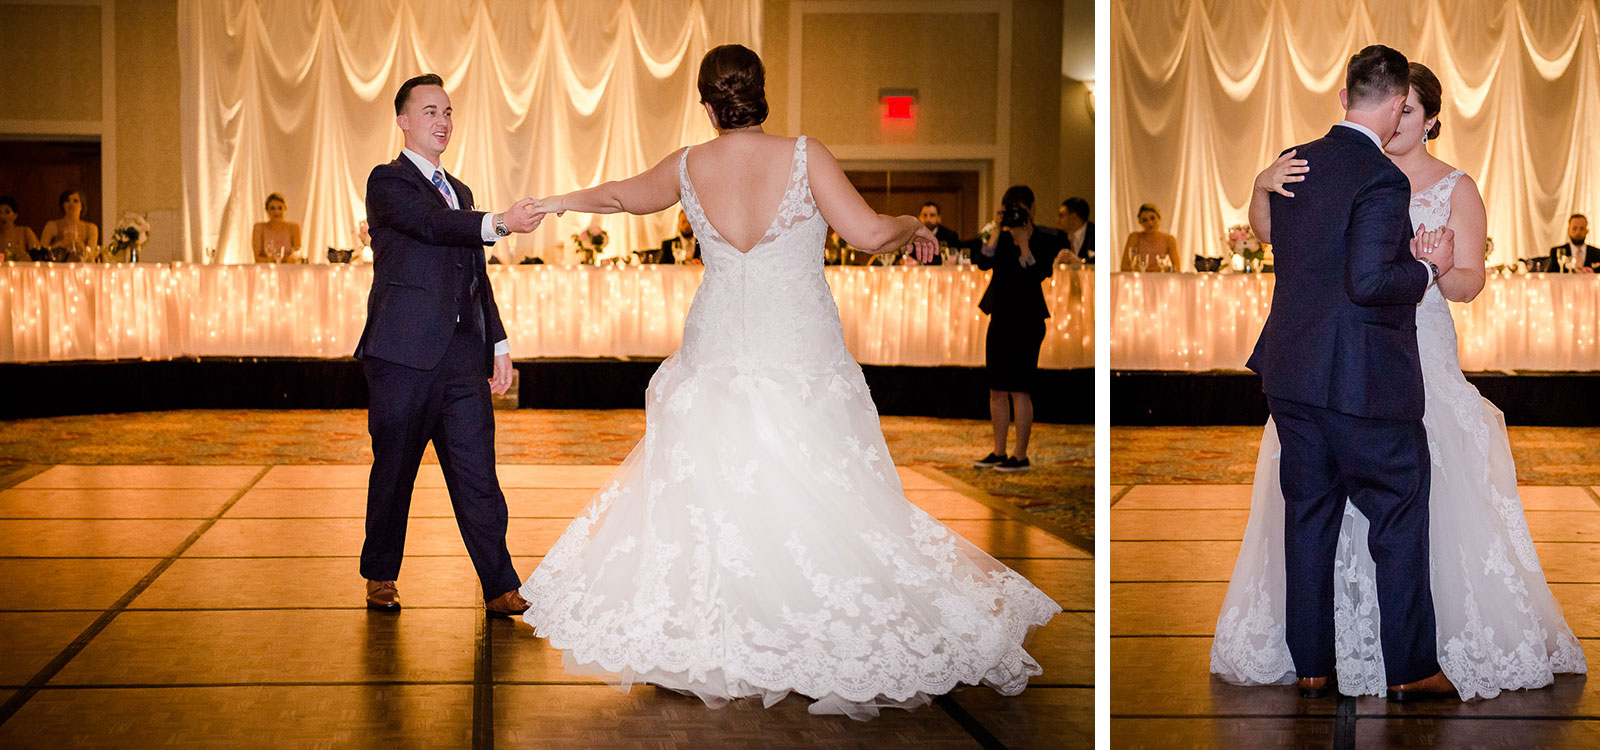 Eric_and_Christy_Photography_Blog_Wedding_Paige_Eric-62-63